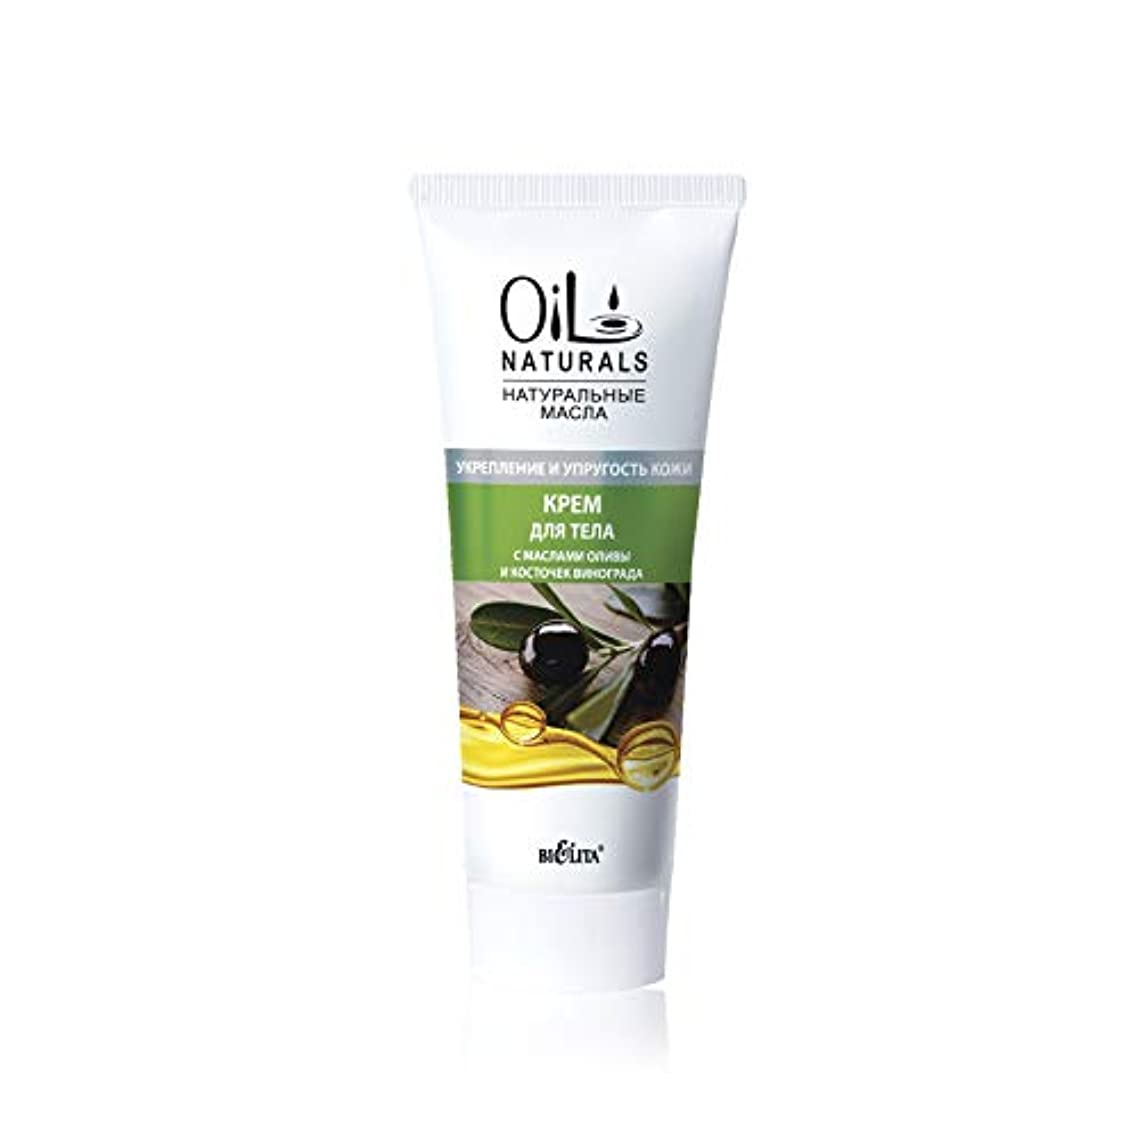 うぬぼれ興味シットコムBielita & Vitex | Oil Naturals Line | Skin Firming & Moisturizing Body Cream, 200 ml | Olive Oil, Silk Proteins...